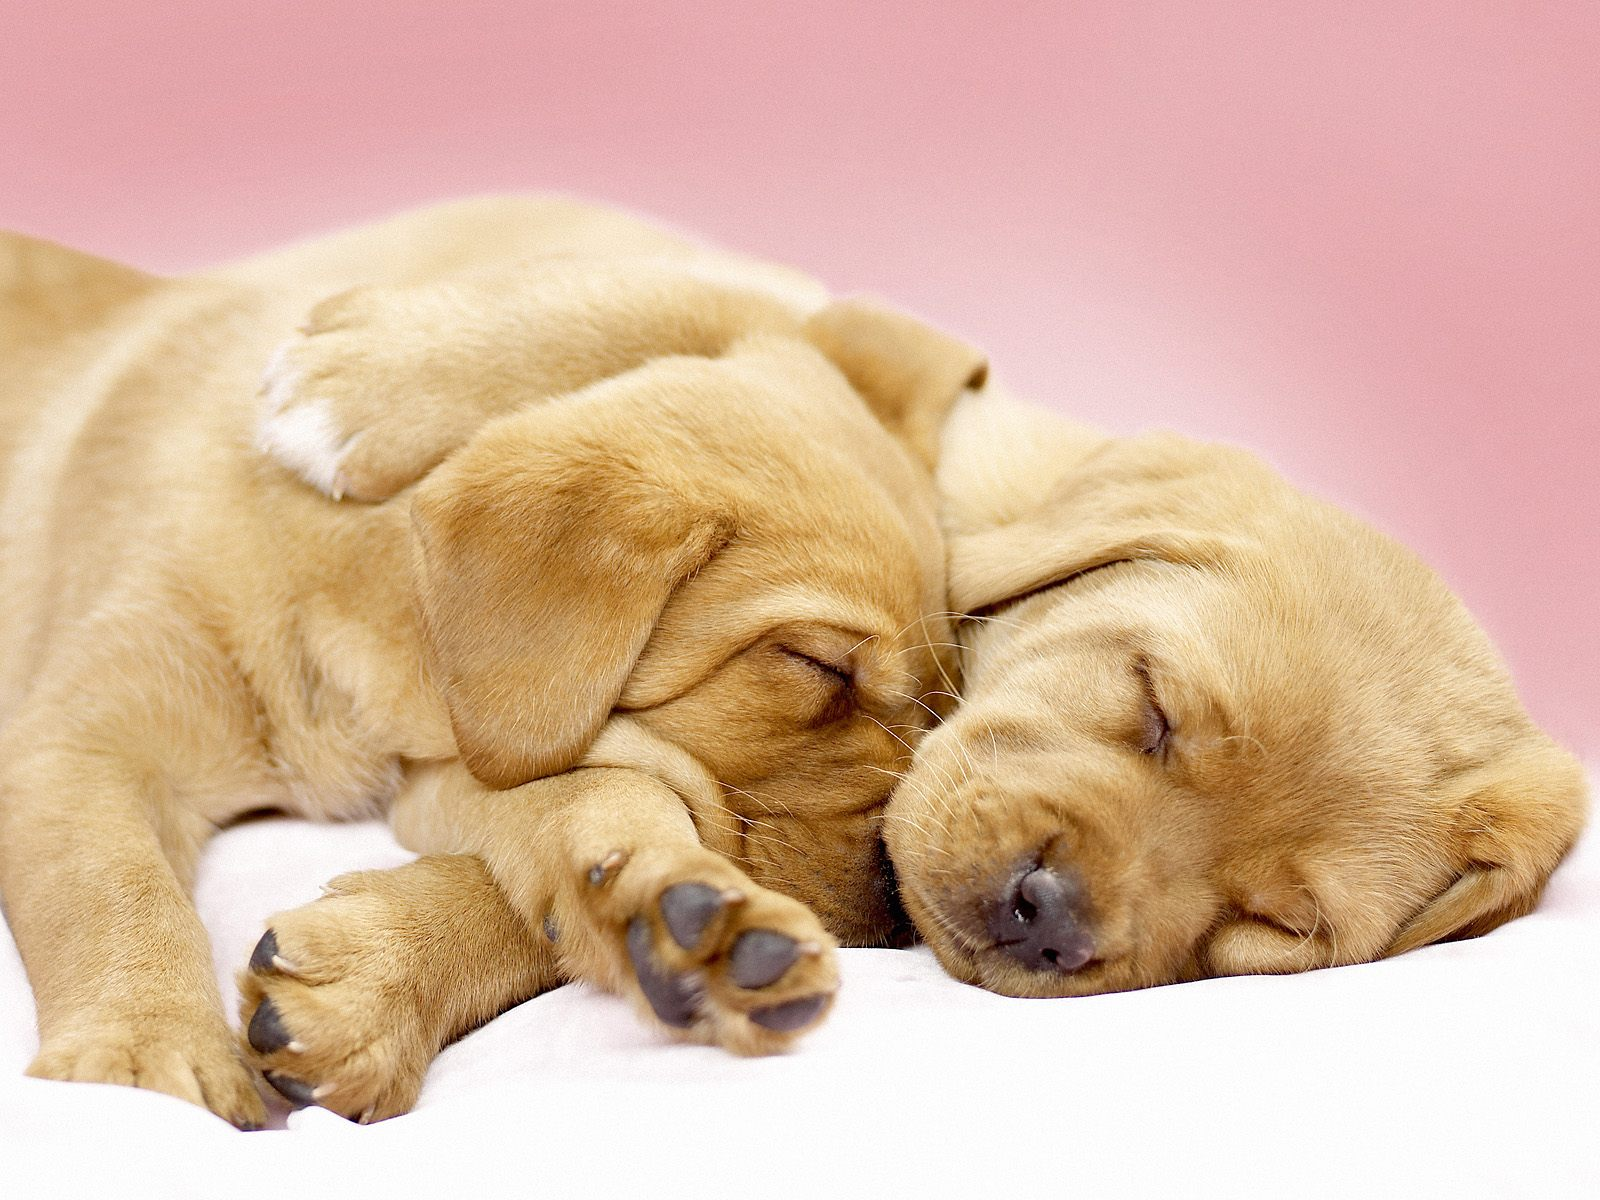 cute dogs images